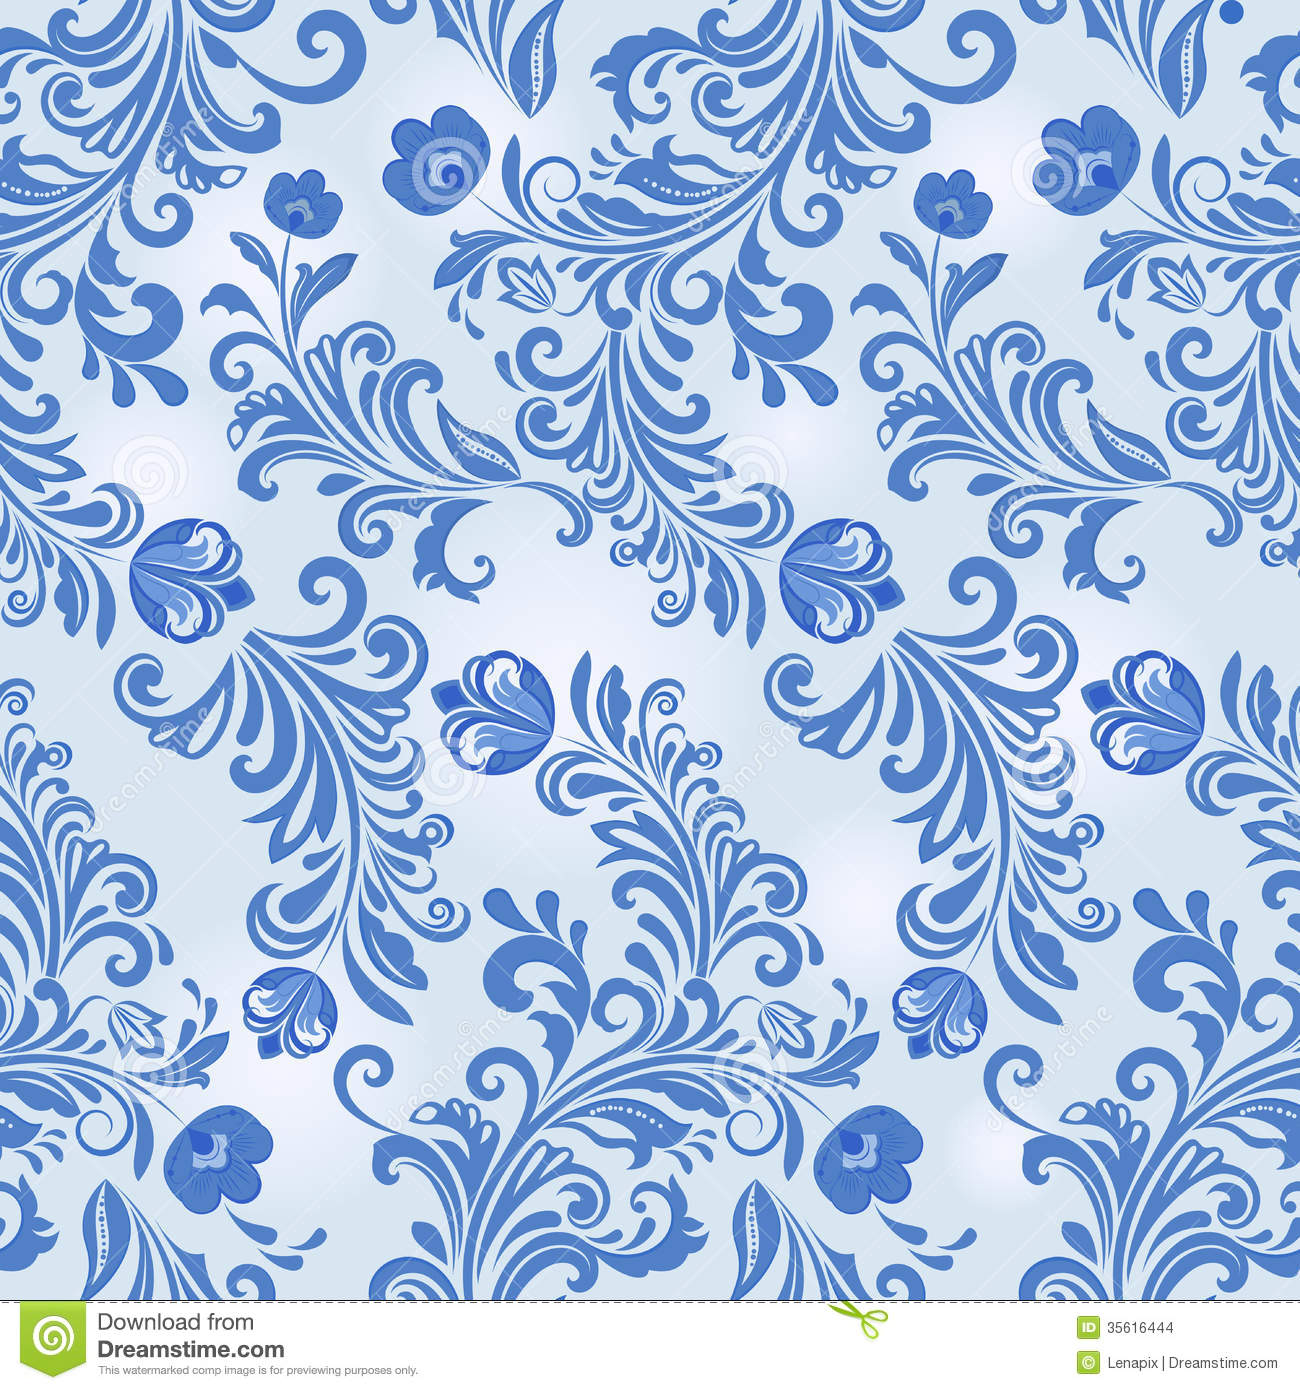 Blue flower wallpaper pattern